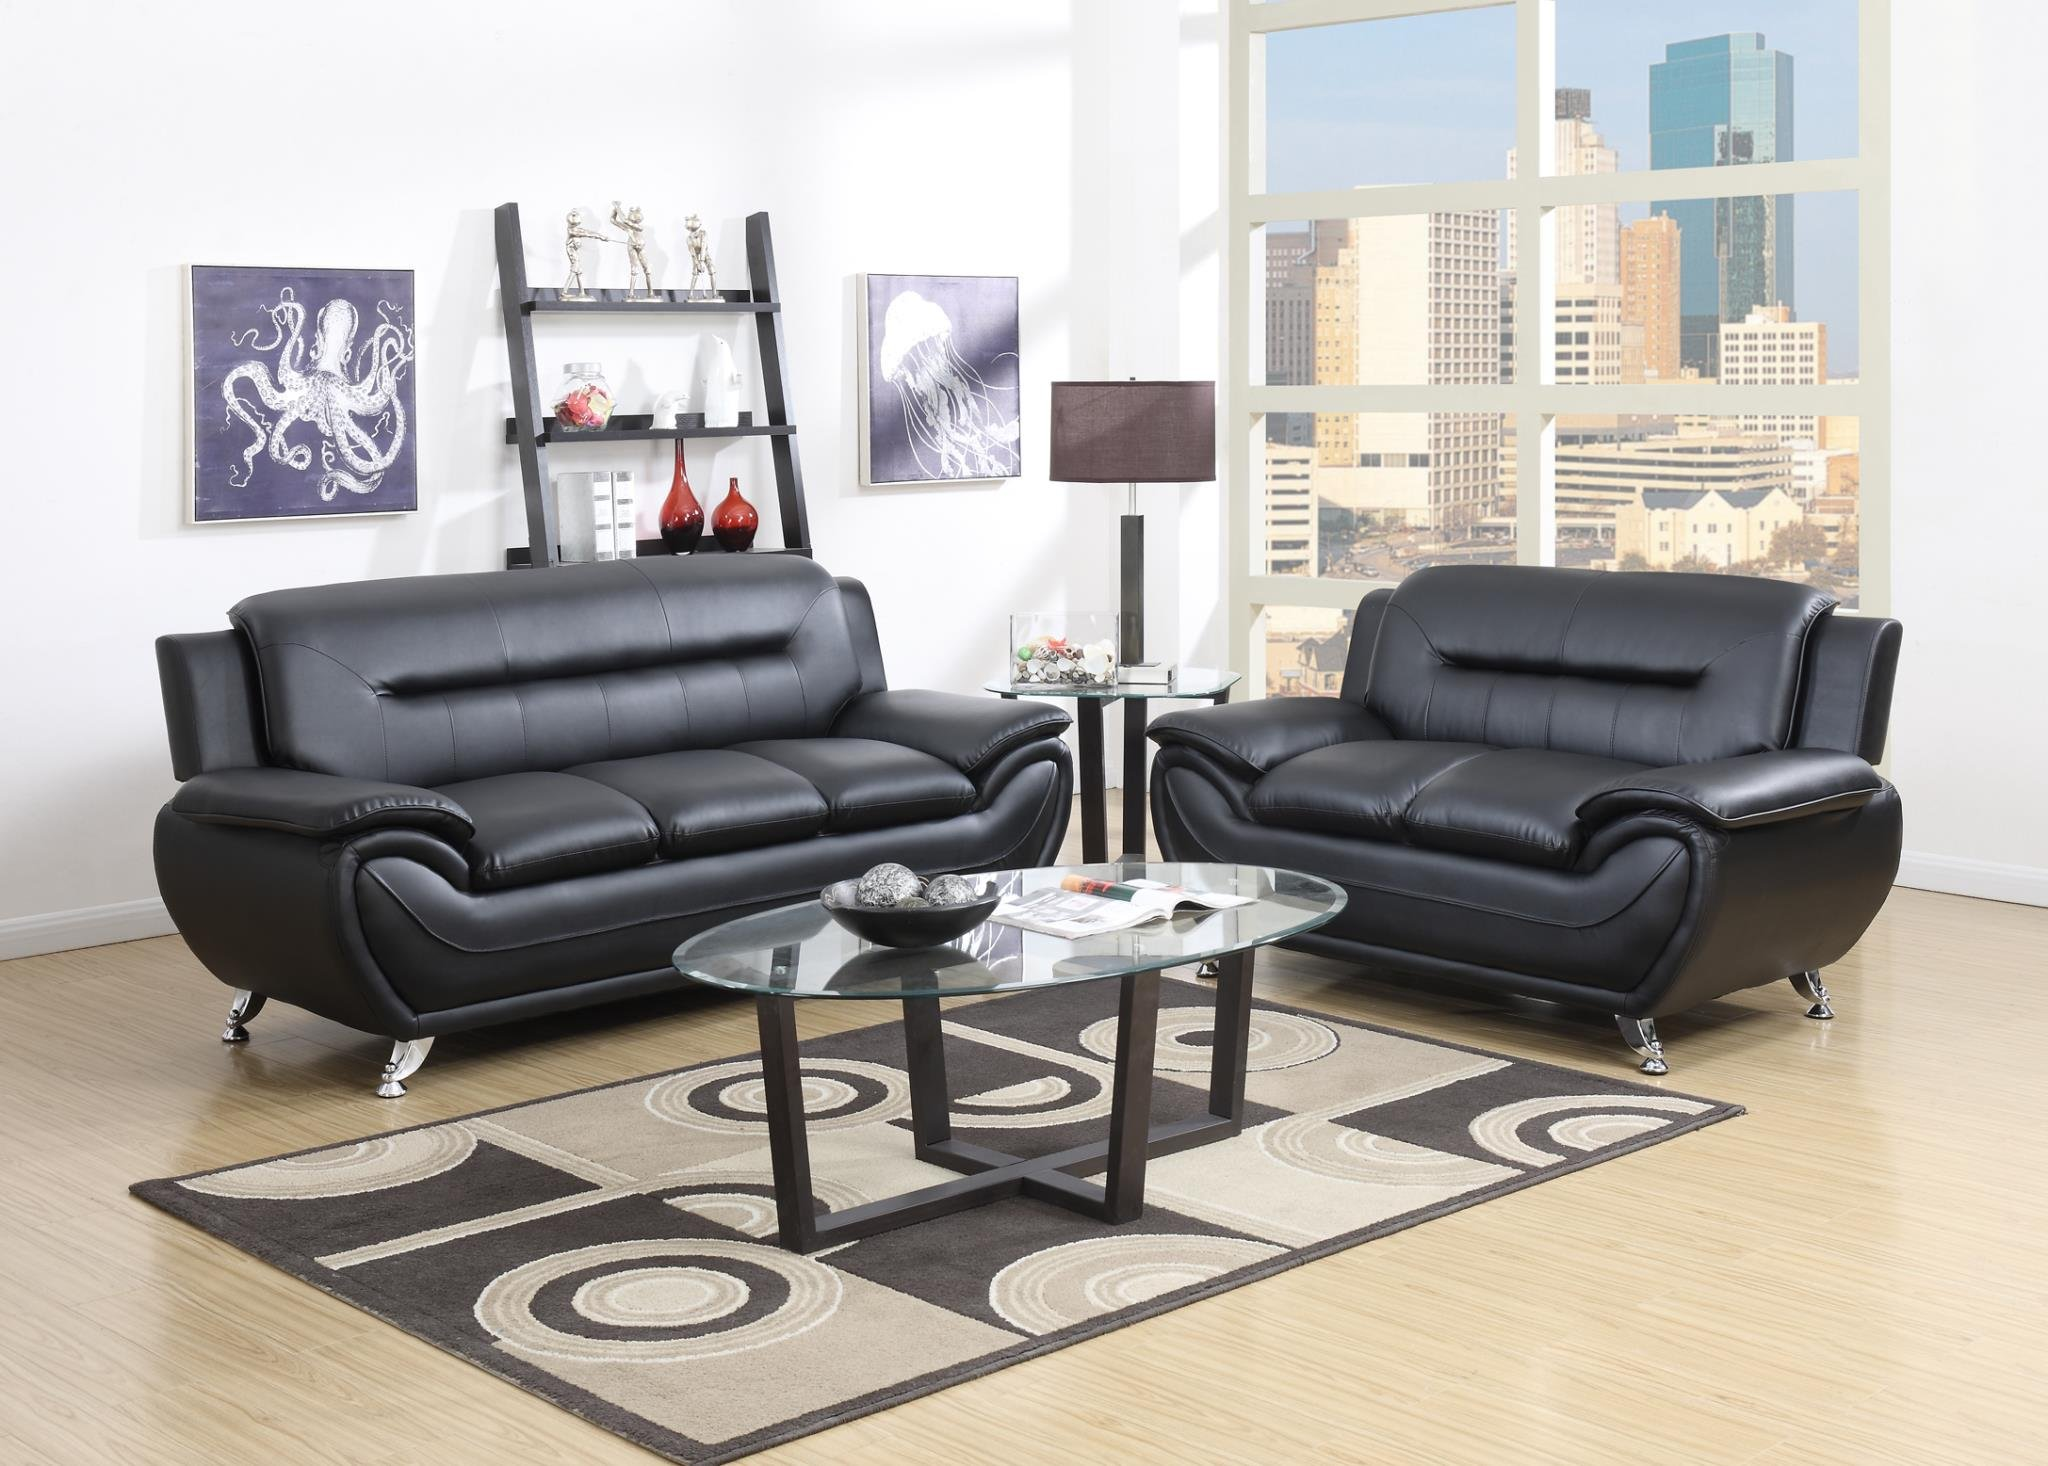 GTU Furniture Contemporary Bonded Leather Sofa & Loveseat Set, 2 Piece Sofa Set (BLACK) by GTU Furniture